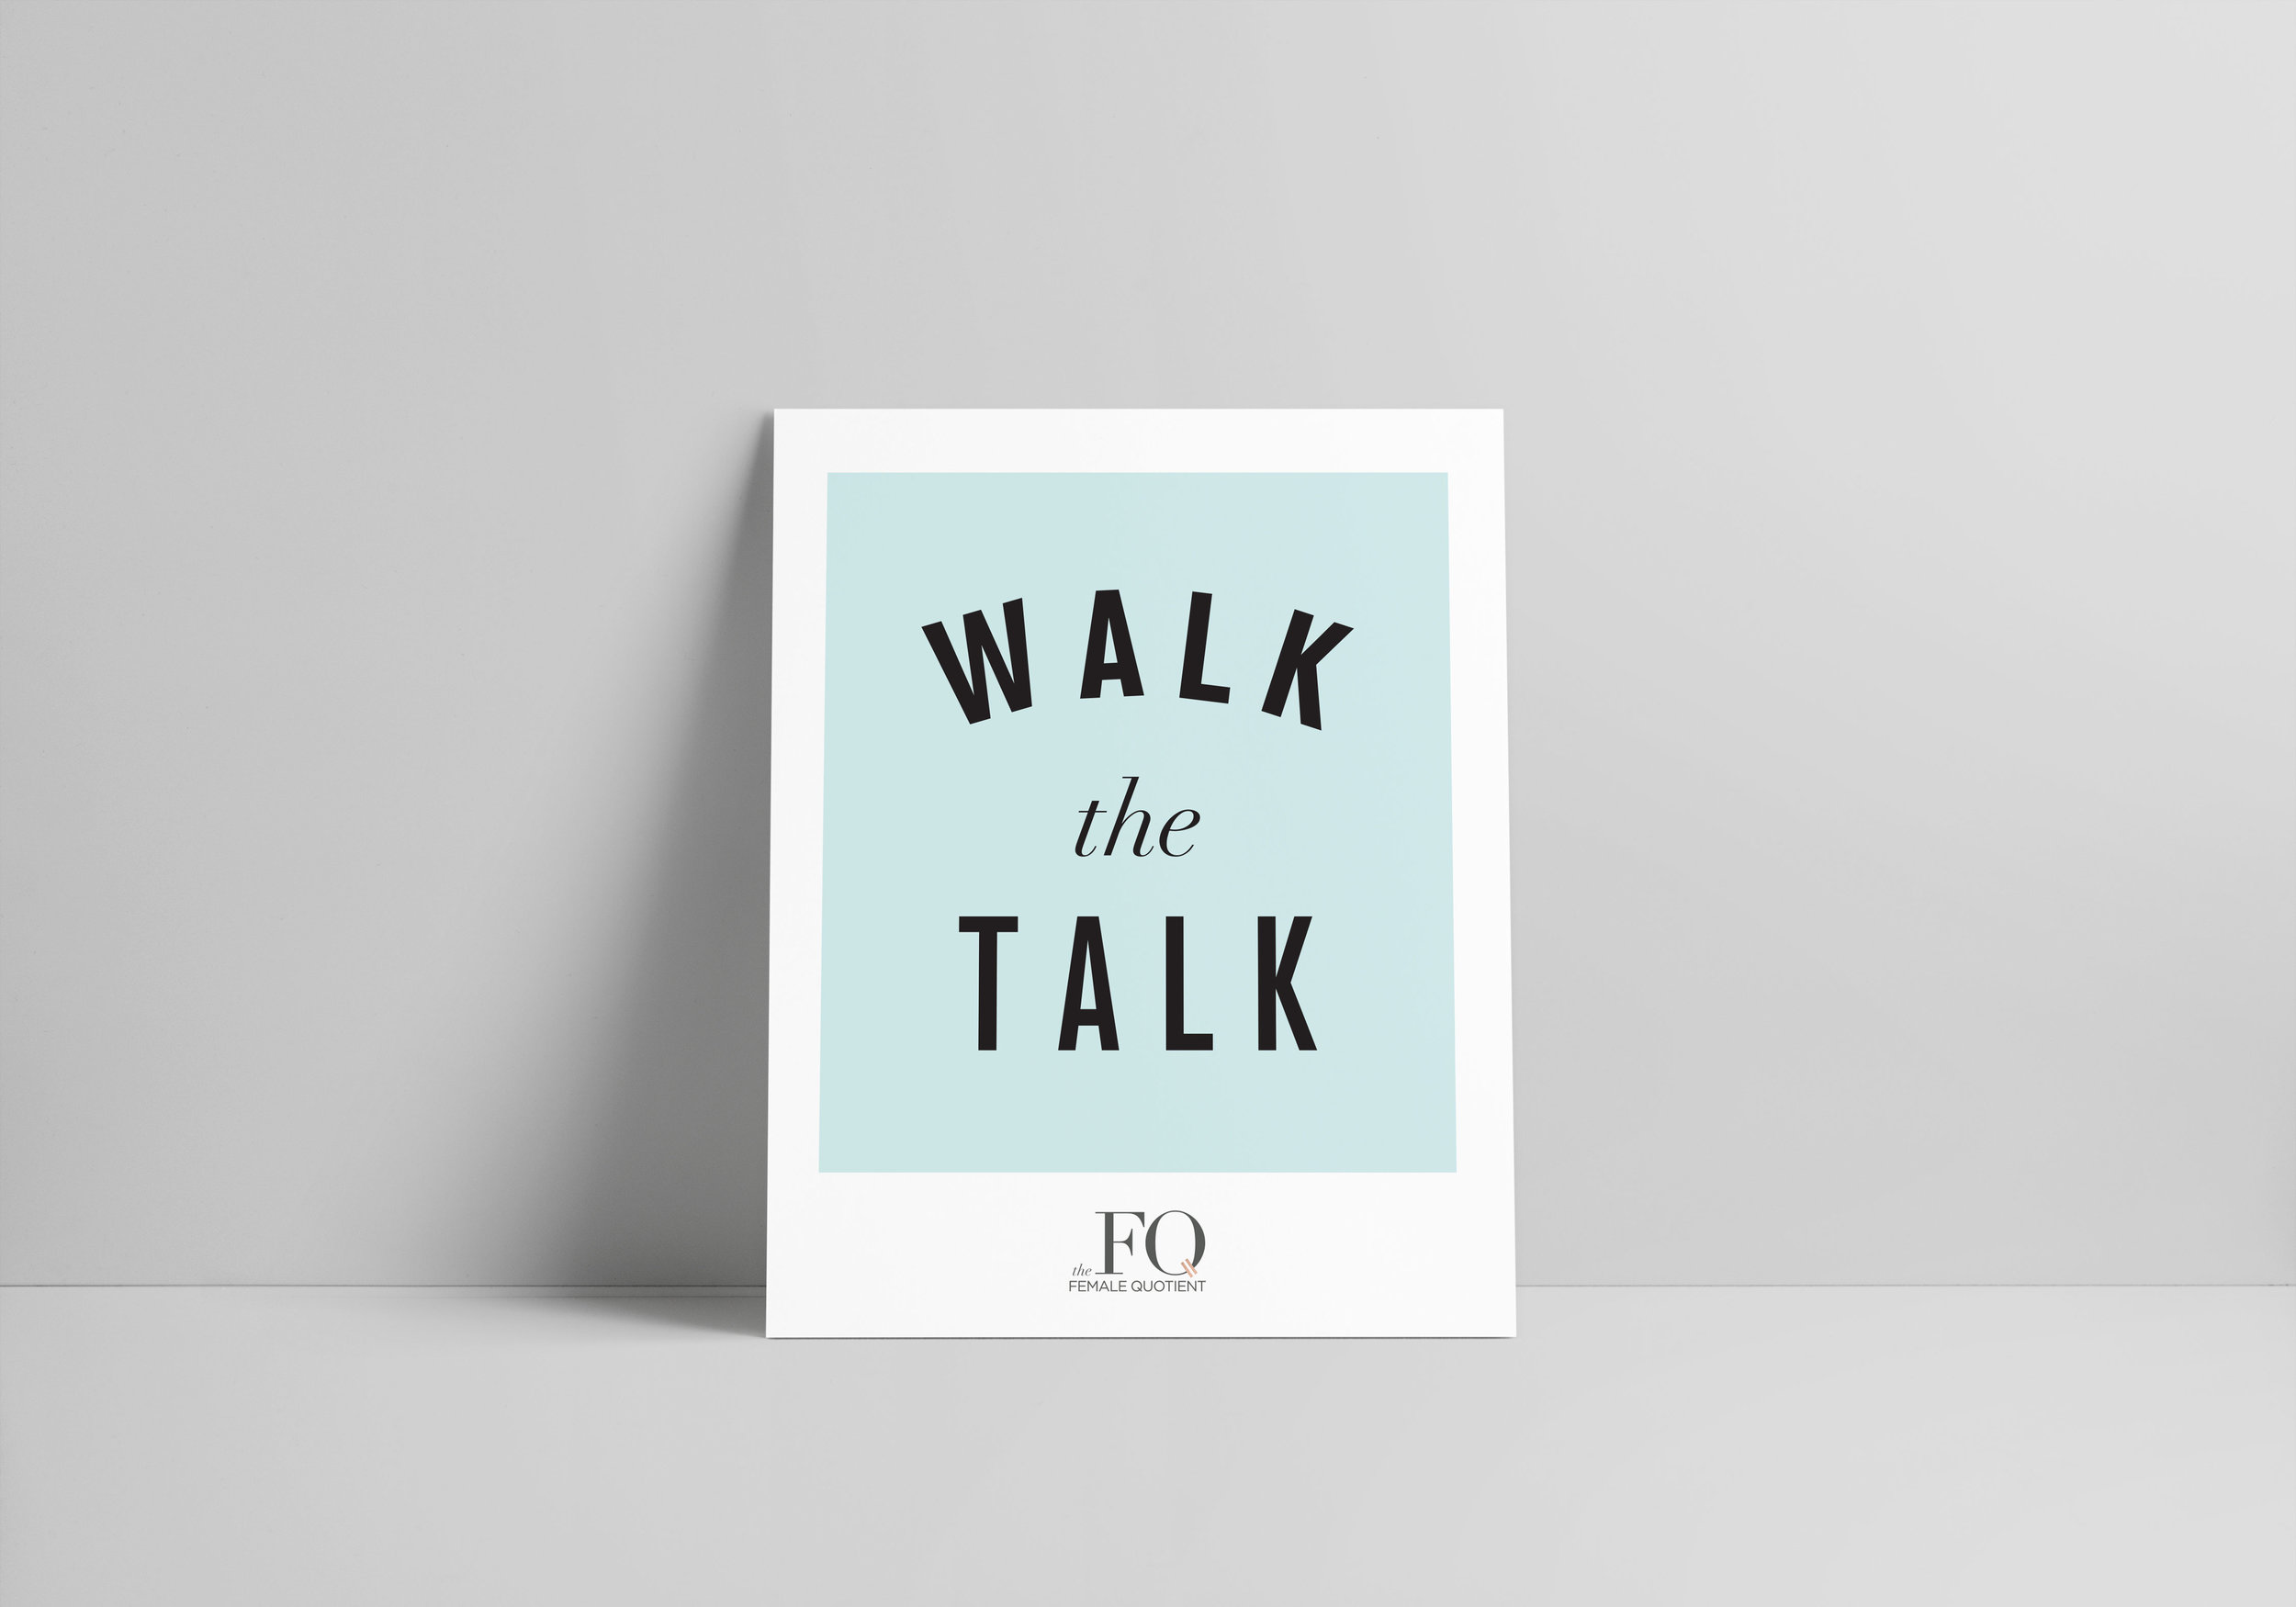 quotes-walk-the-talk.jpg